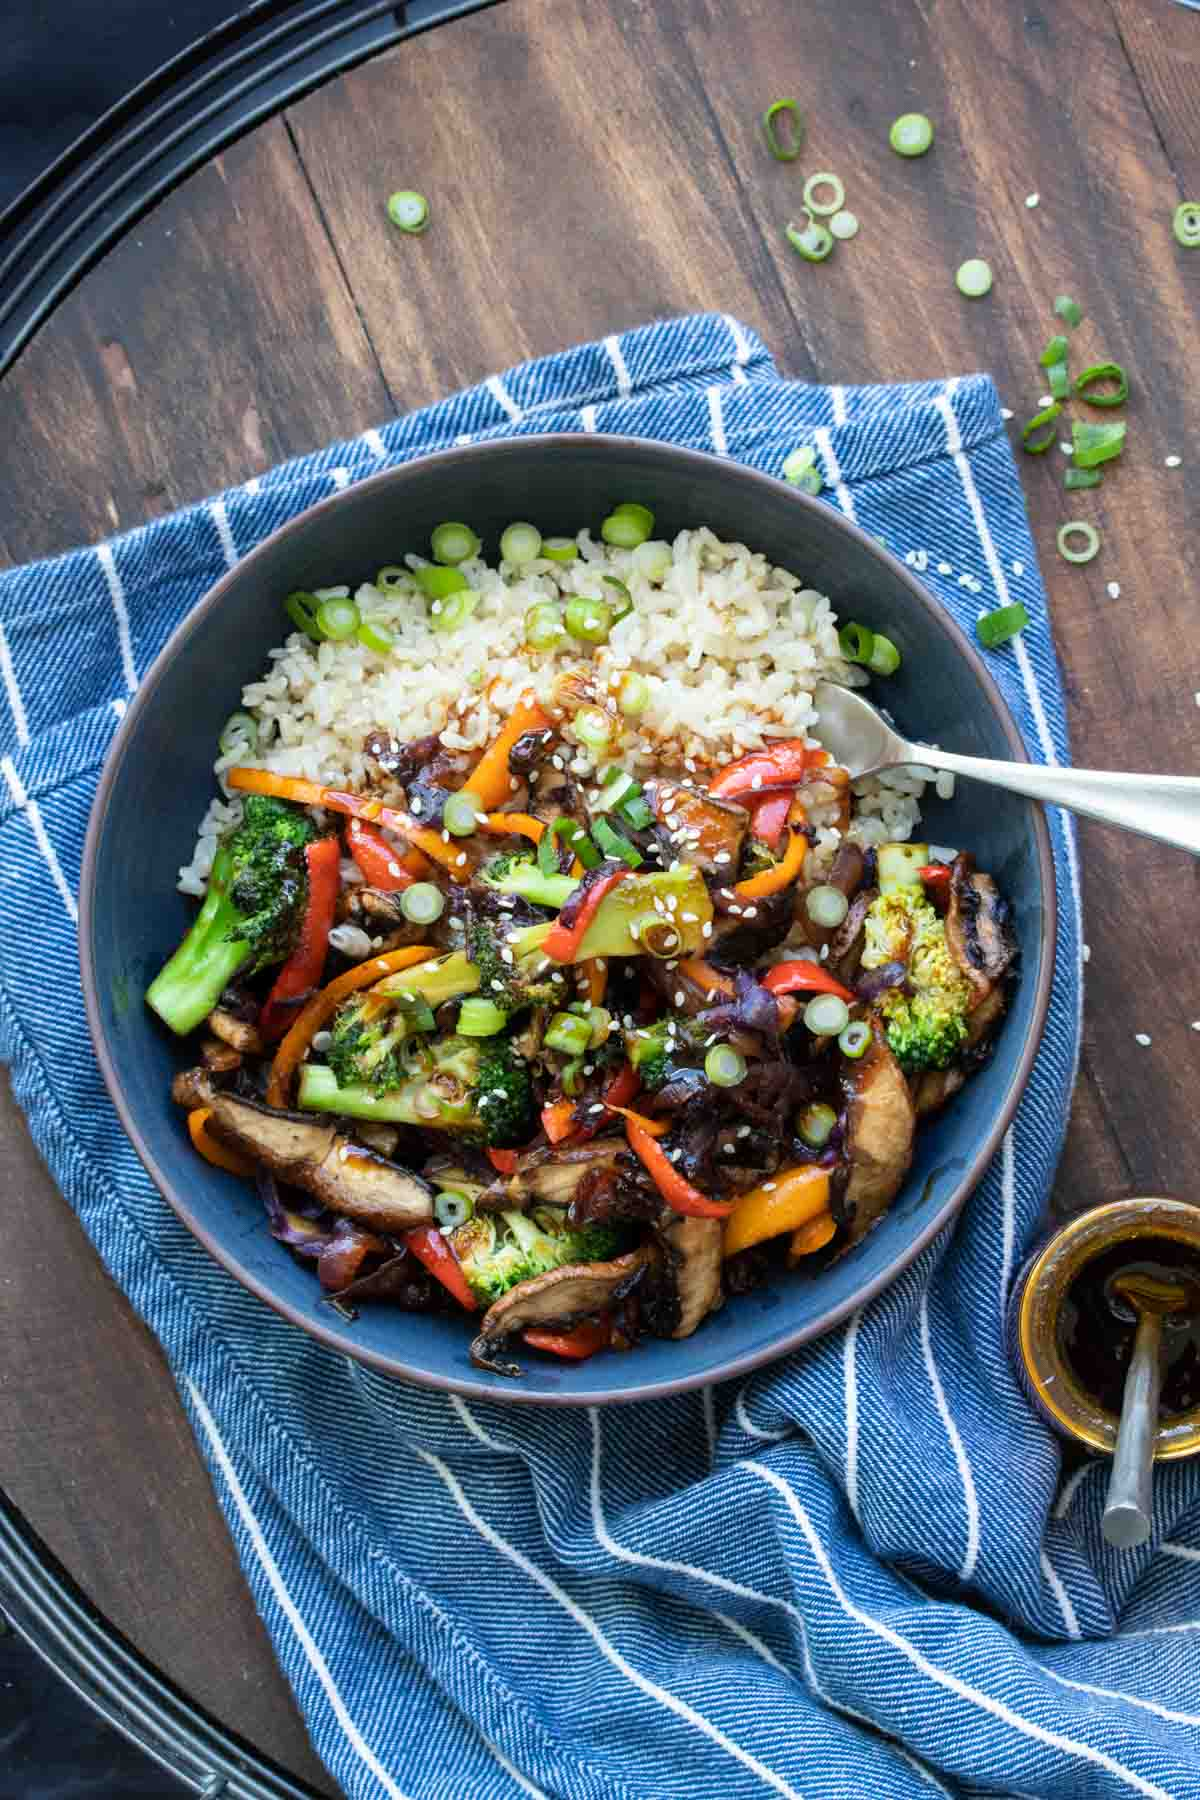 Black bowl filled with rice topped with teriyaki vegetable stir fry